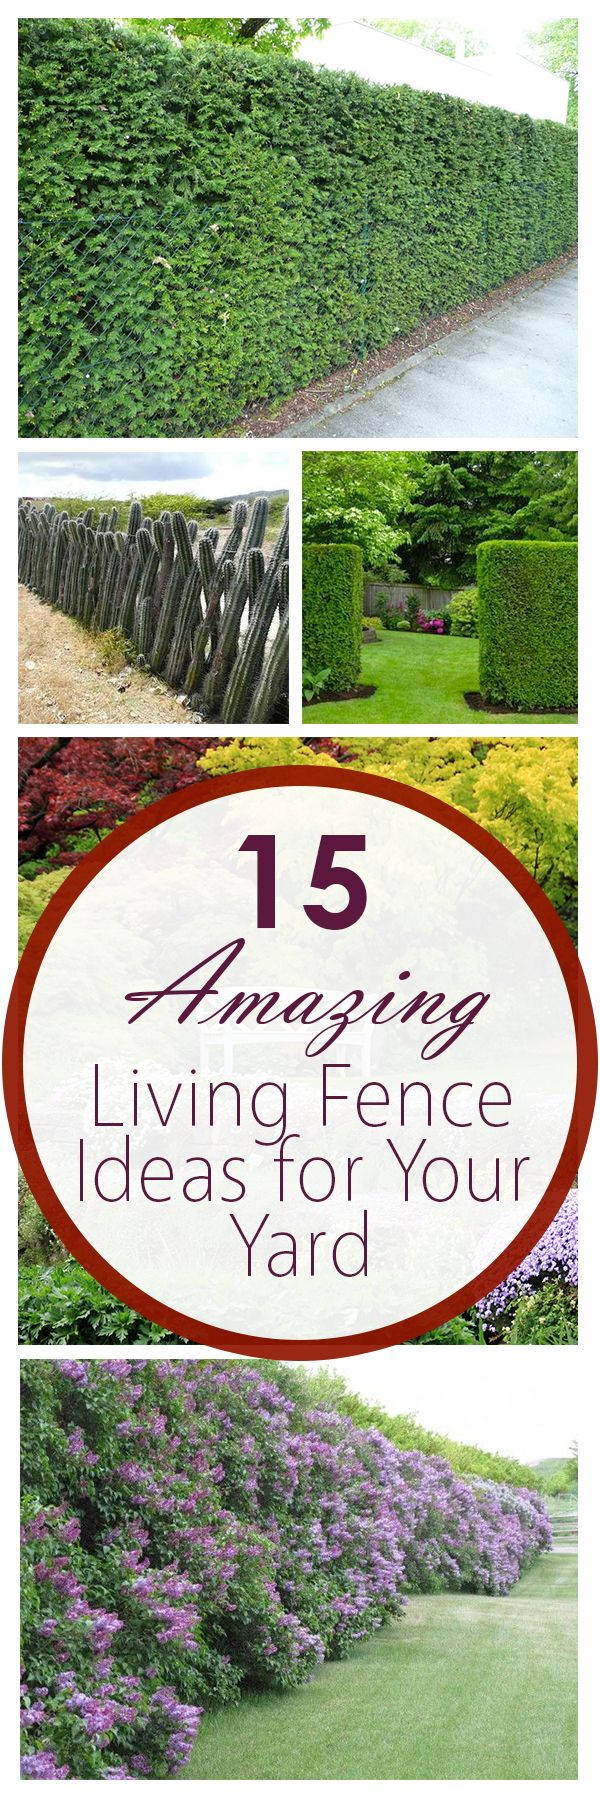 15 Amazing Living Fence Ideas for Your Yard Living fence